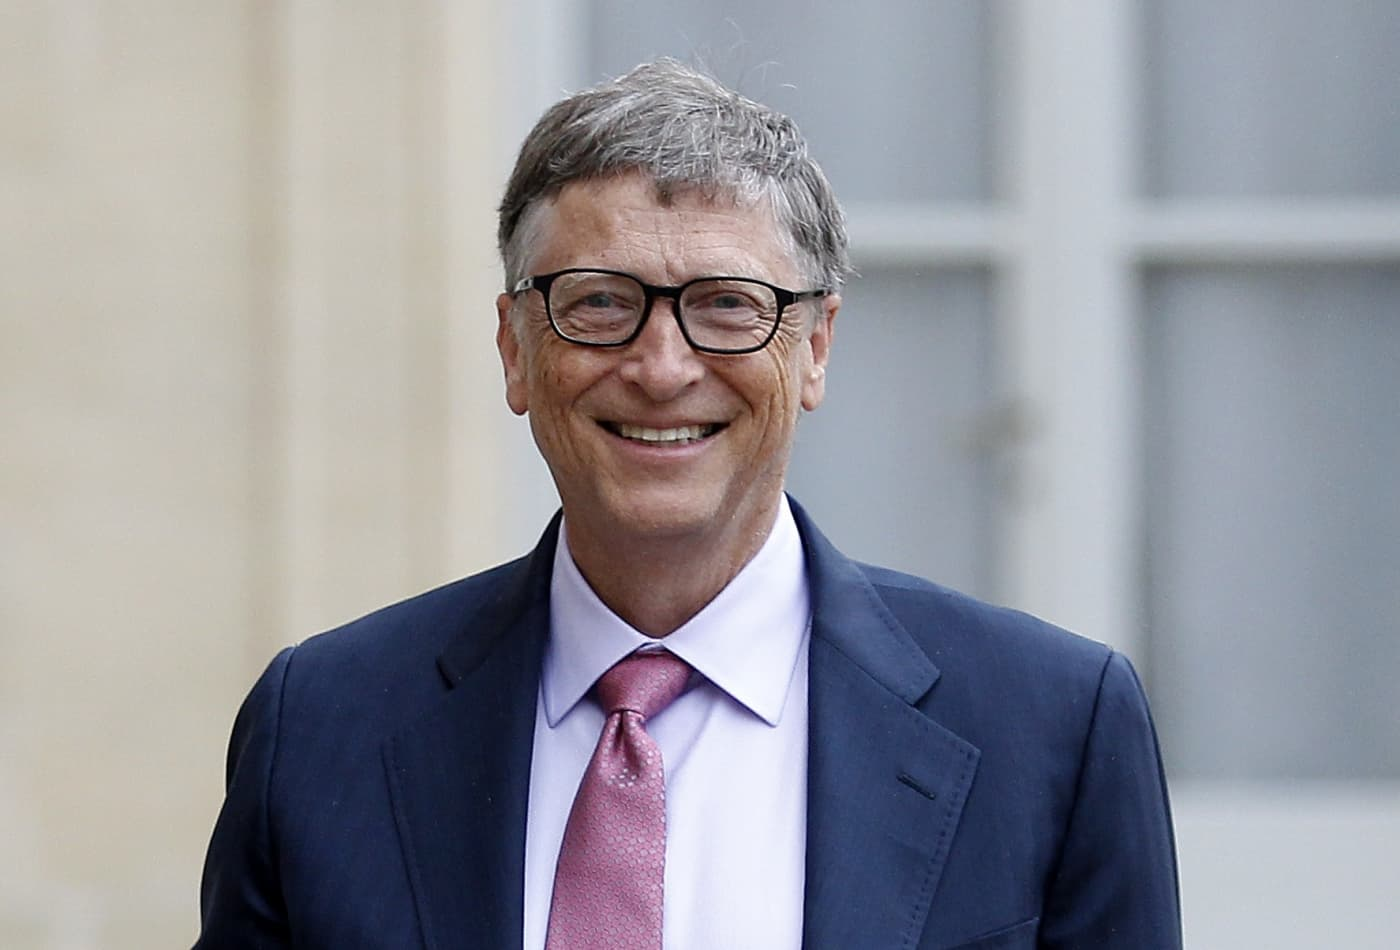 Bill Gates' 2019 summer reading recommendations